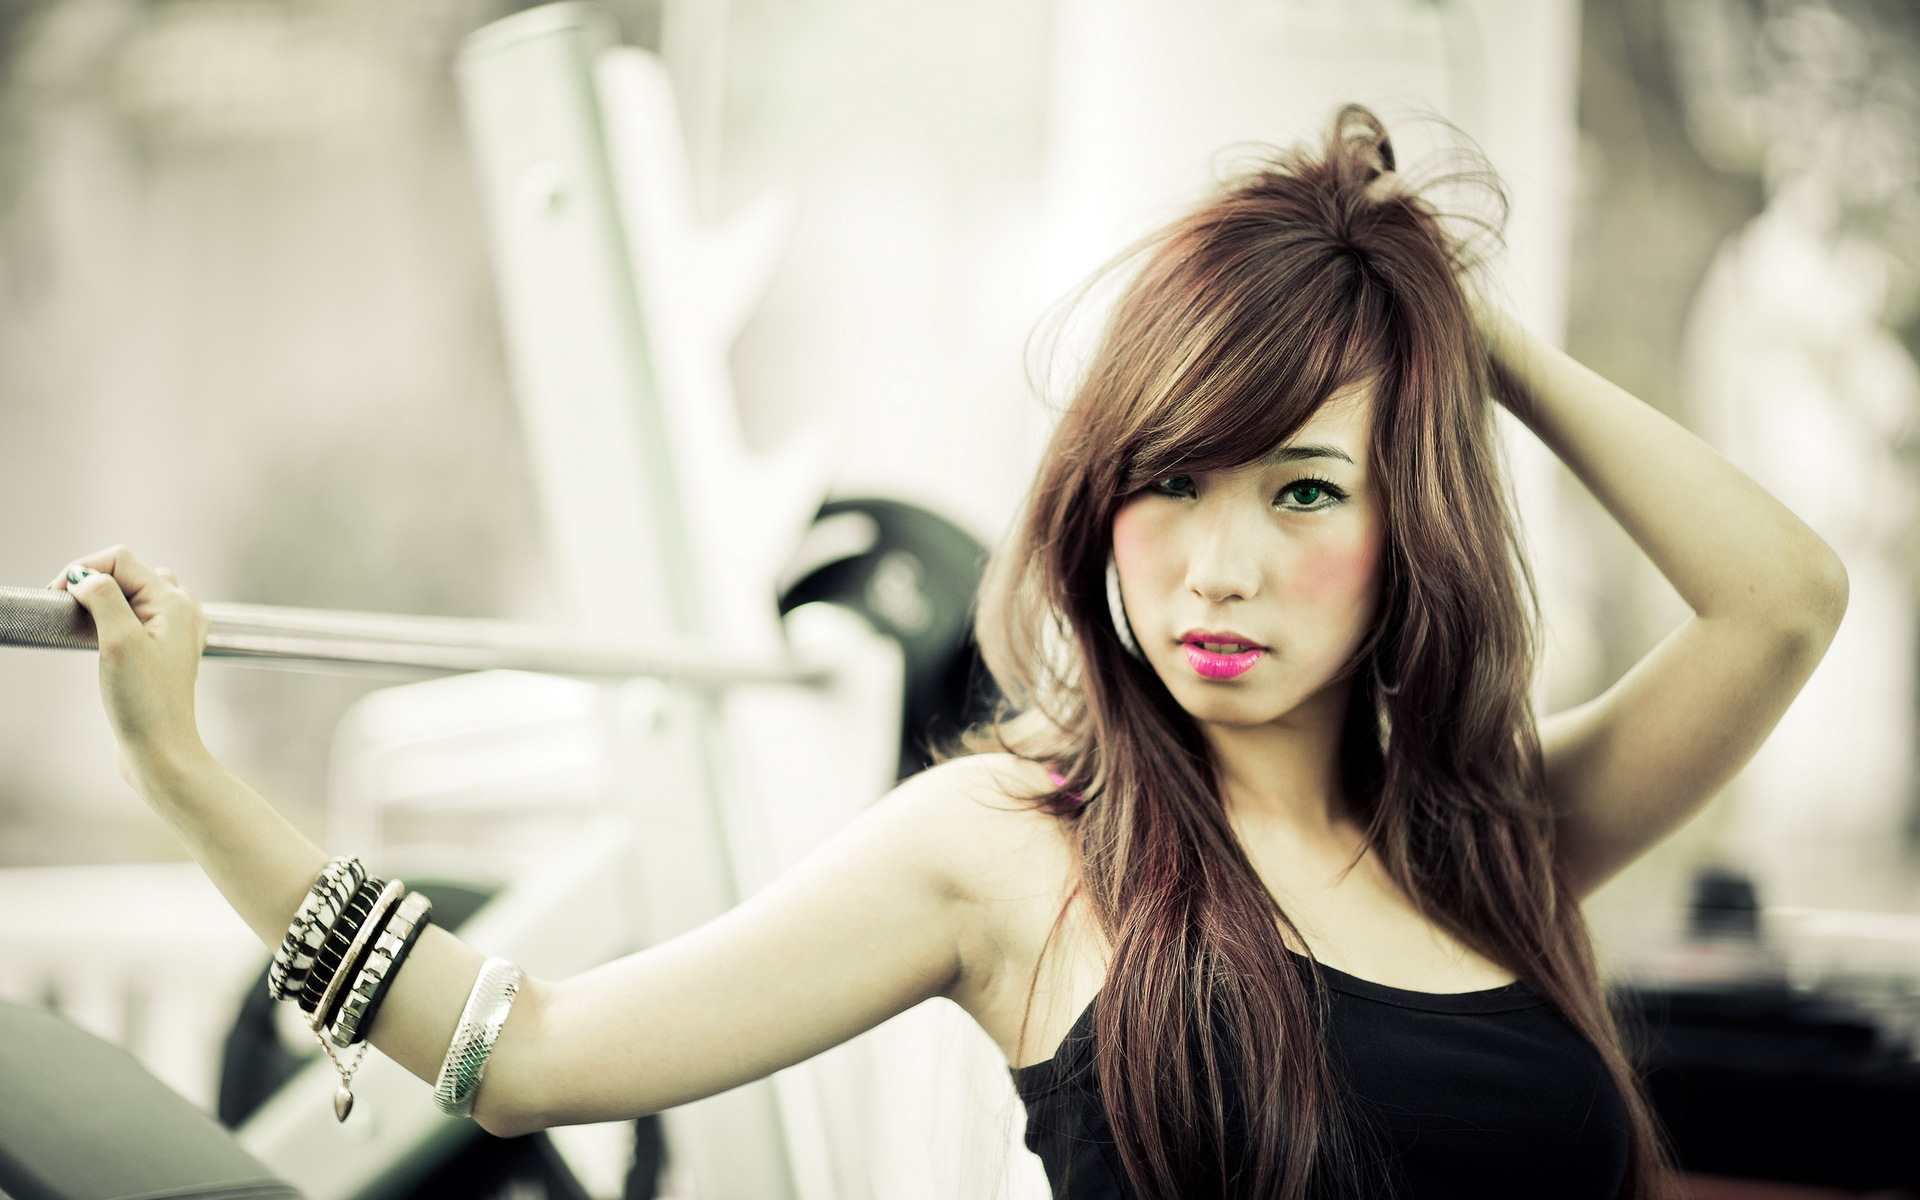 Asian Hd Wallpaper  Background Image  1920X1200  Id -6845